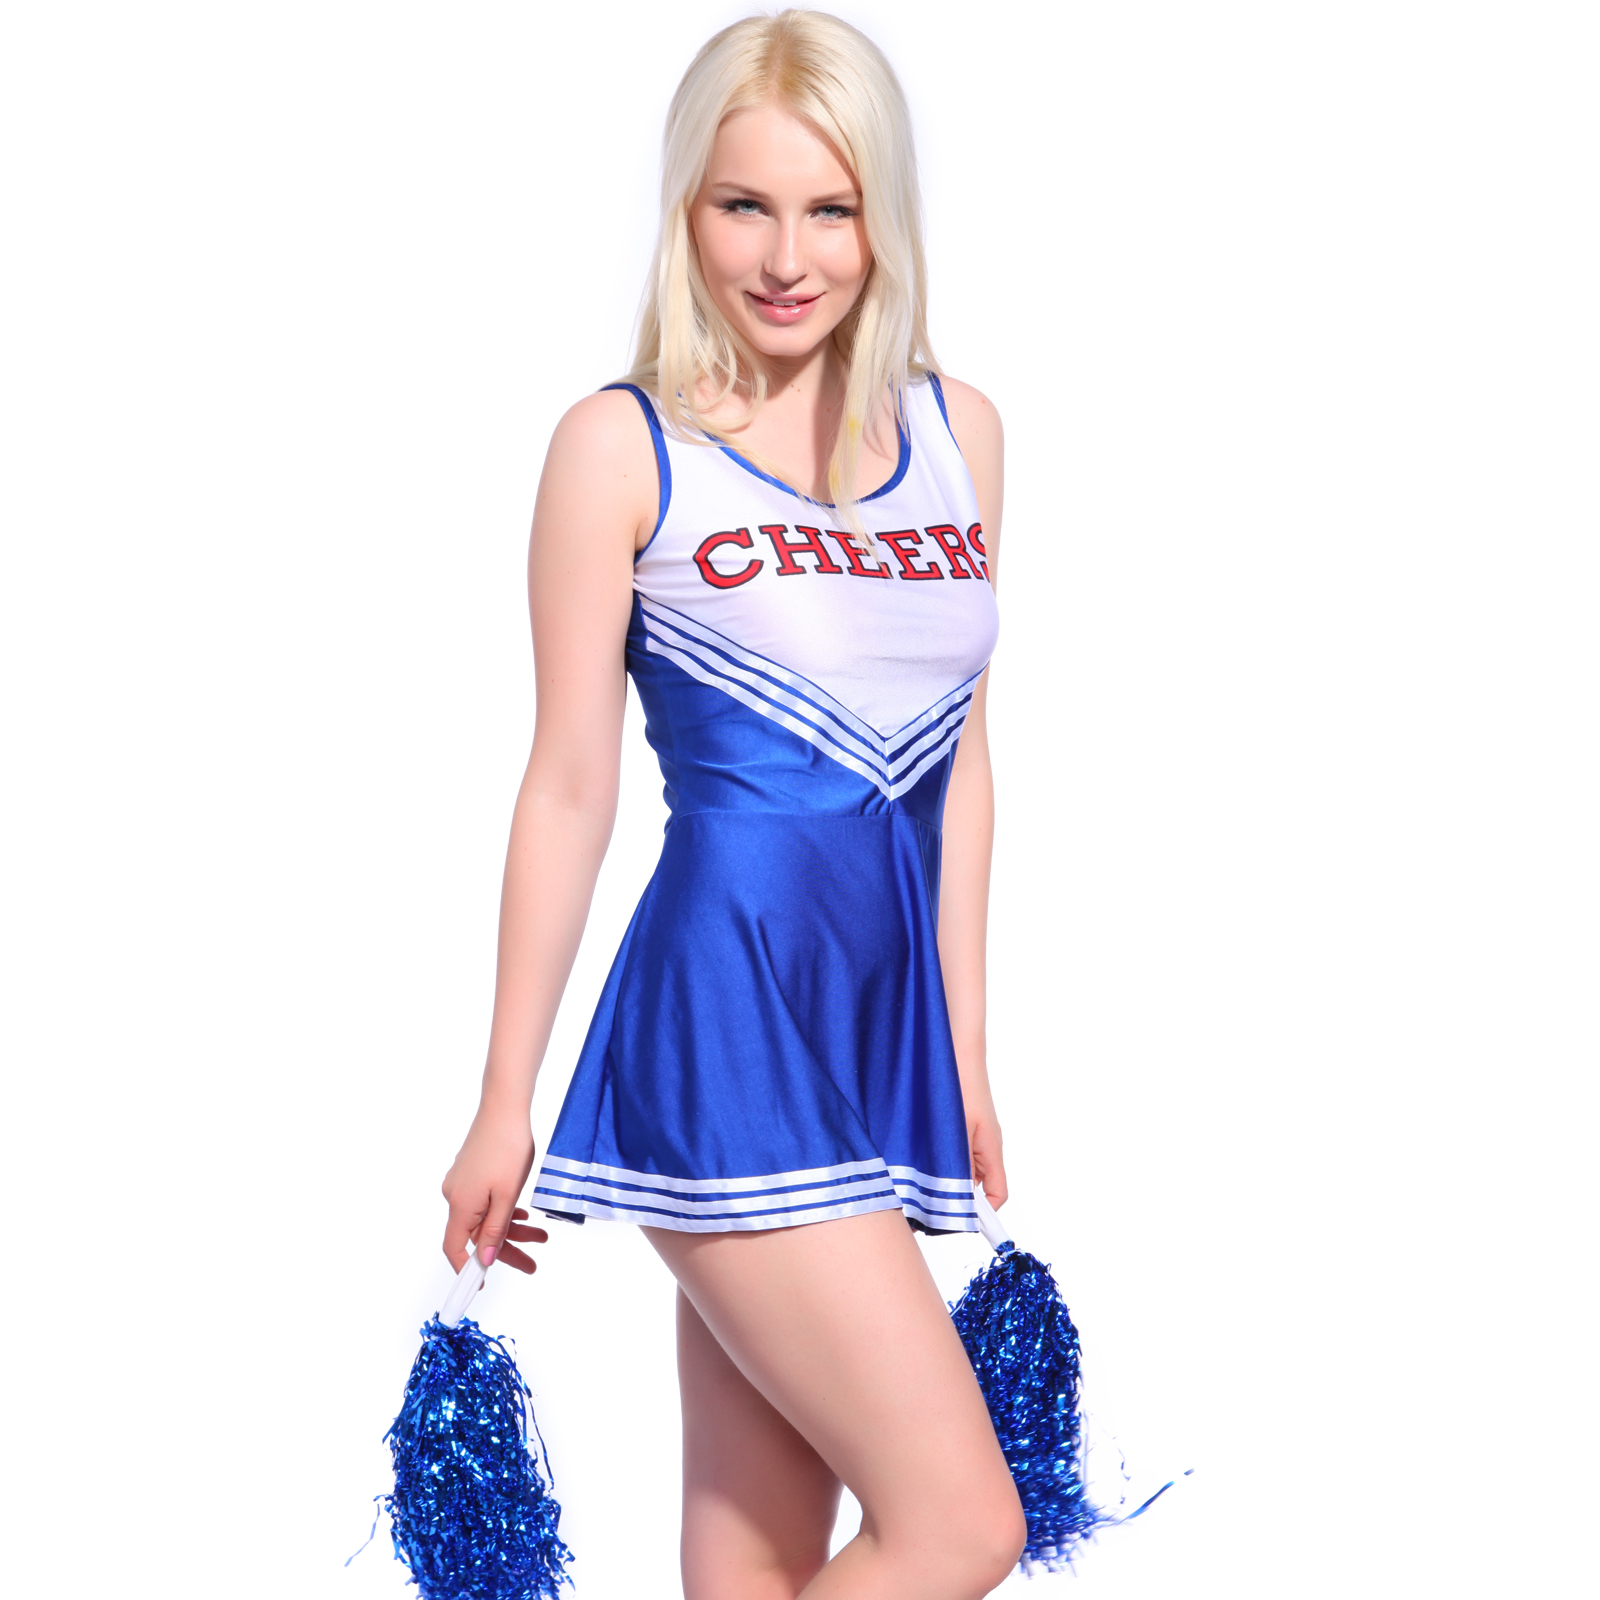 Anal complilation! sexy highschool cheerleader